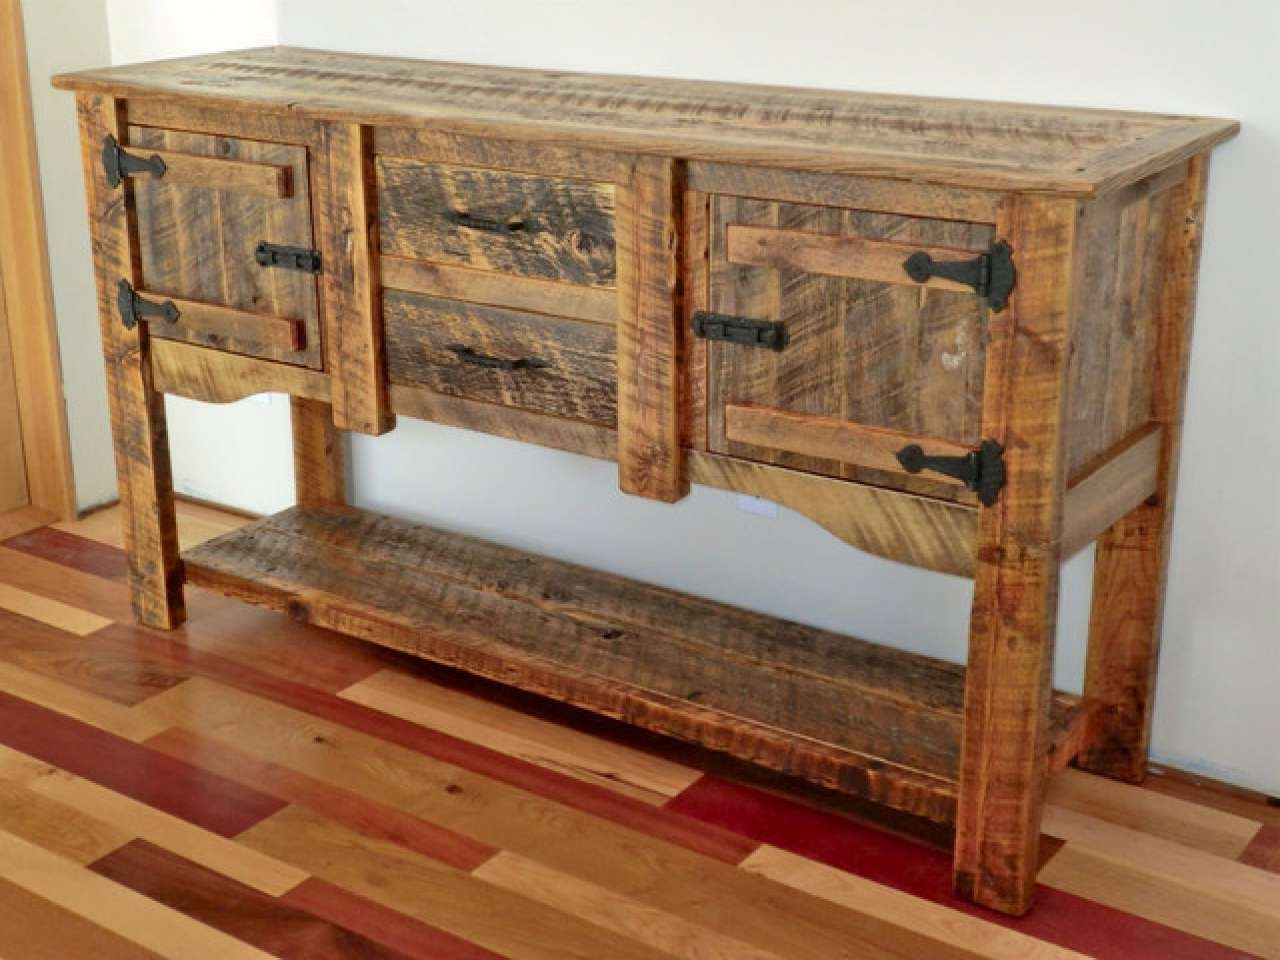 Pine Wood Kitchens, Ideas For Painted Buffet Sideboards Rustic Throughout Rustic Sideboards And Buffets (View 8 of 20)